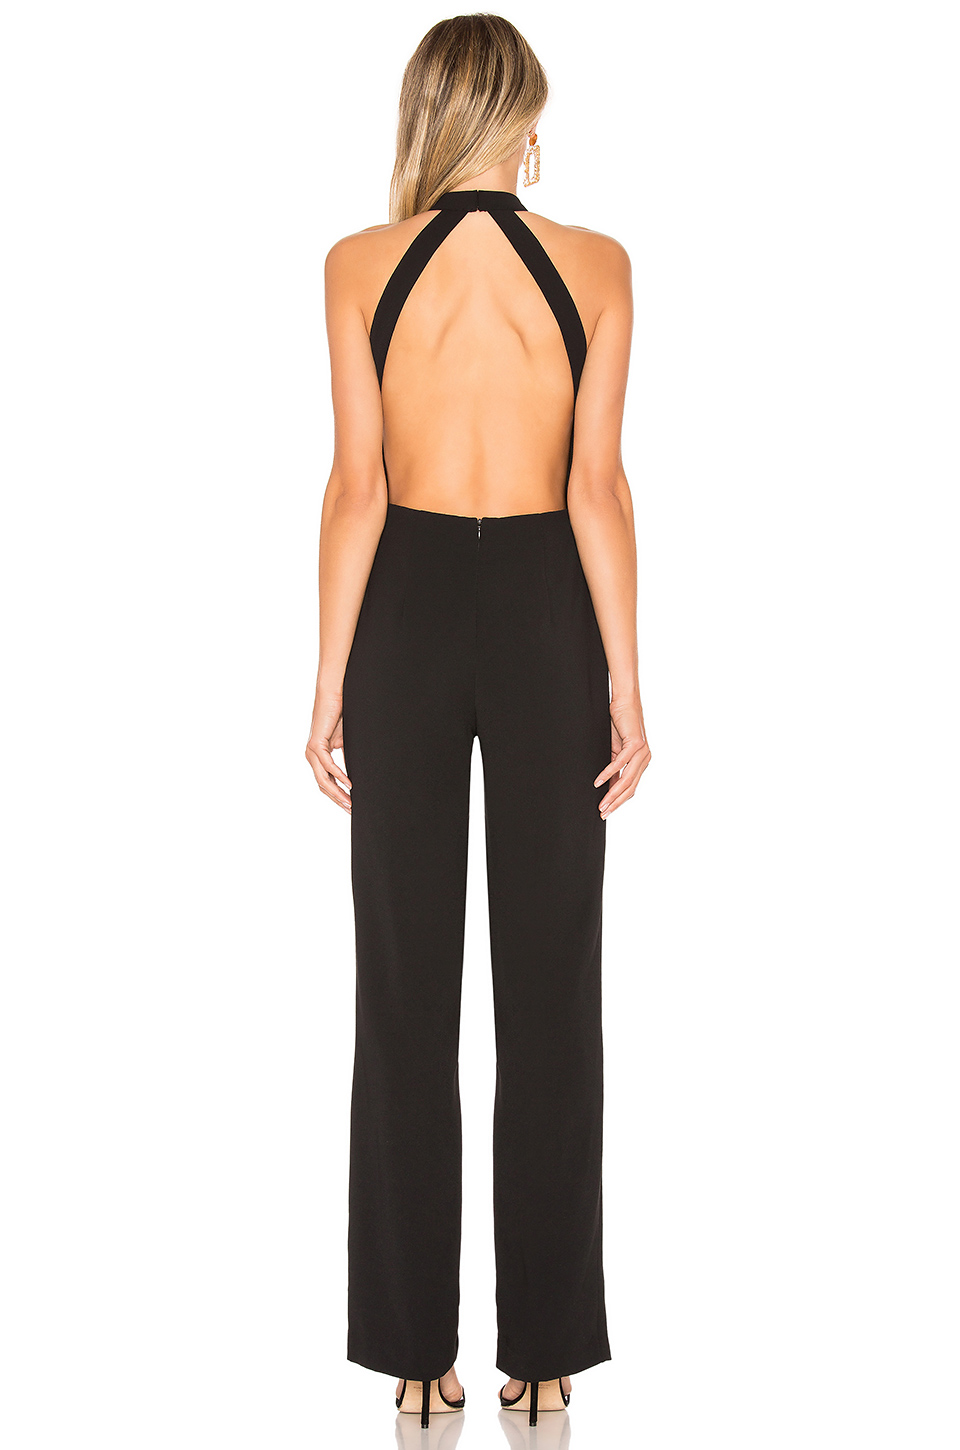 House of Harlow 1960 Meant To Be Jumpsuit